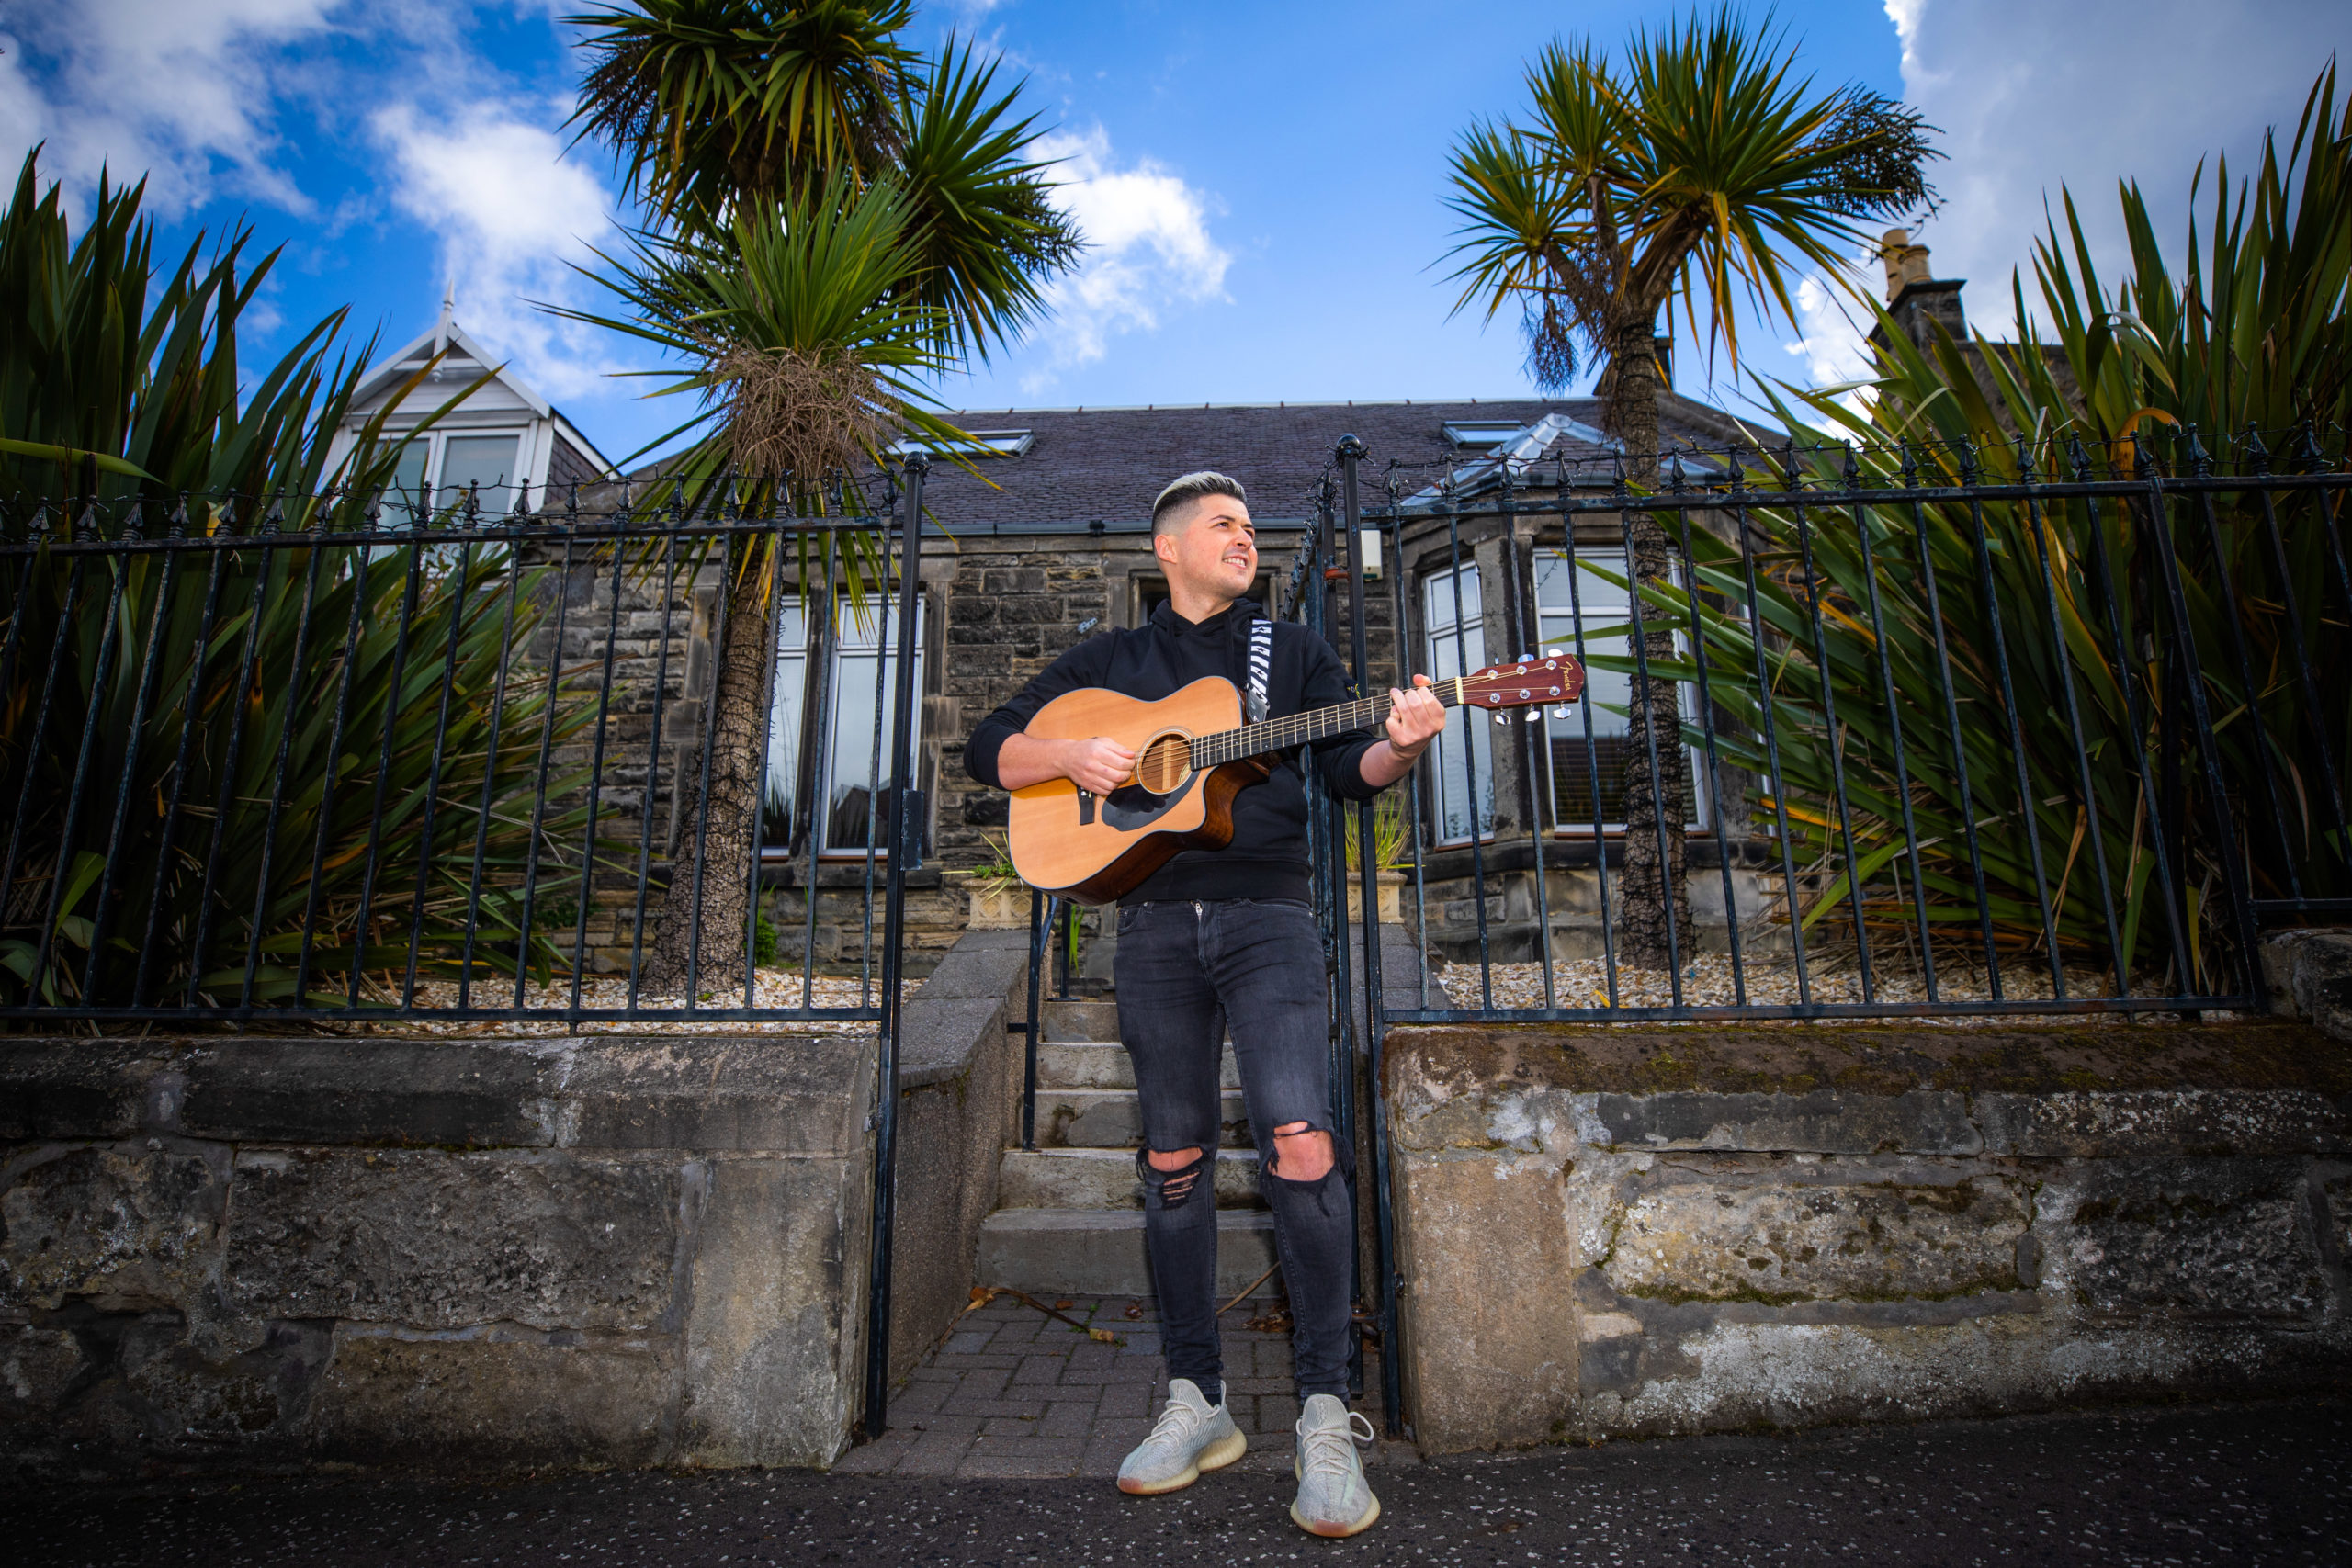 Kirkcaldy singer Phil Ciarletta has turned lockdown disappointment into a chance to further his career.